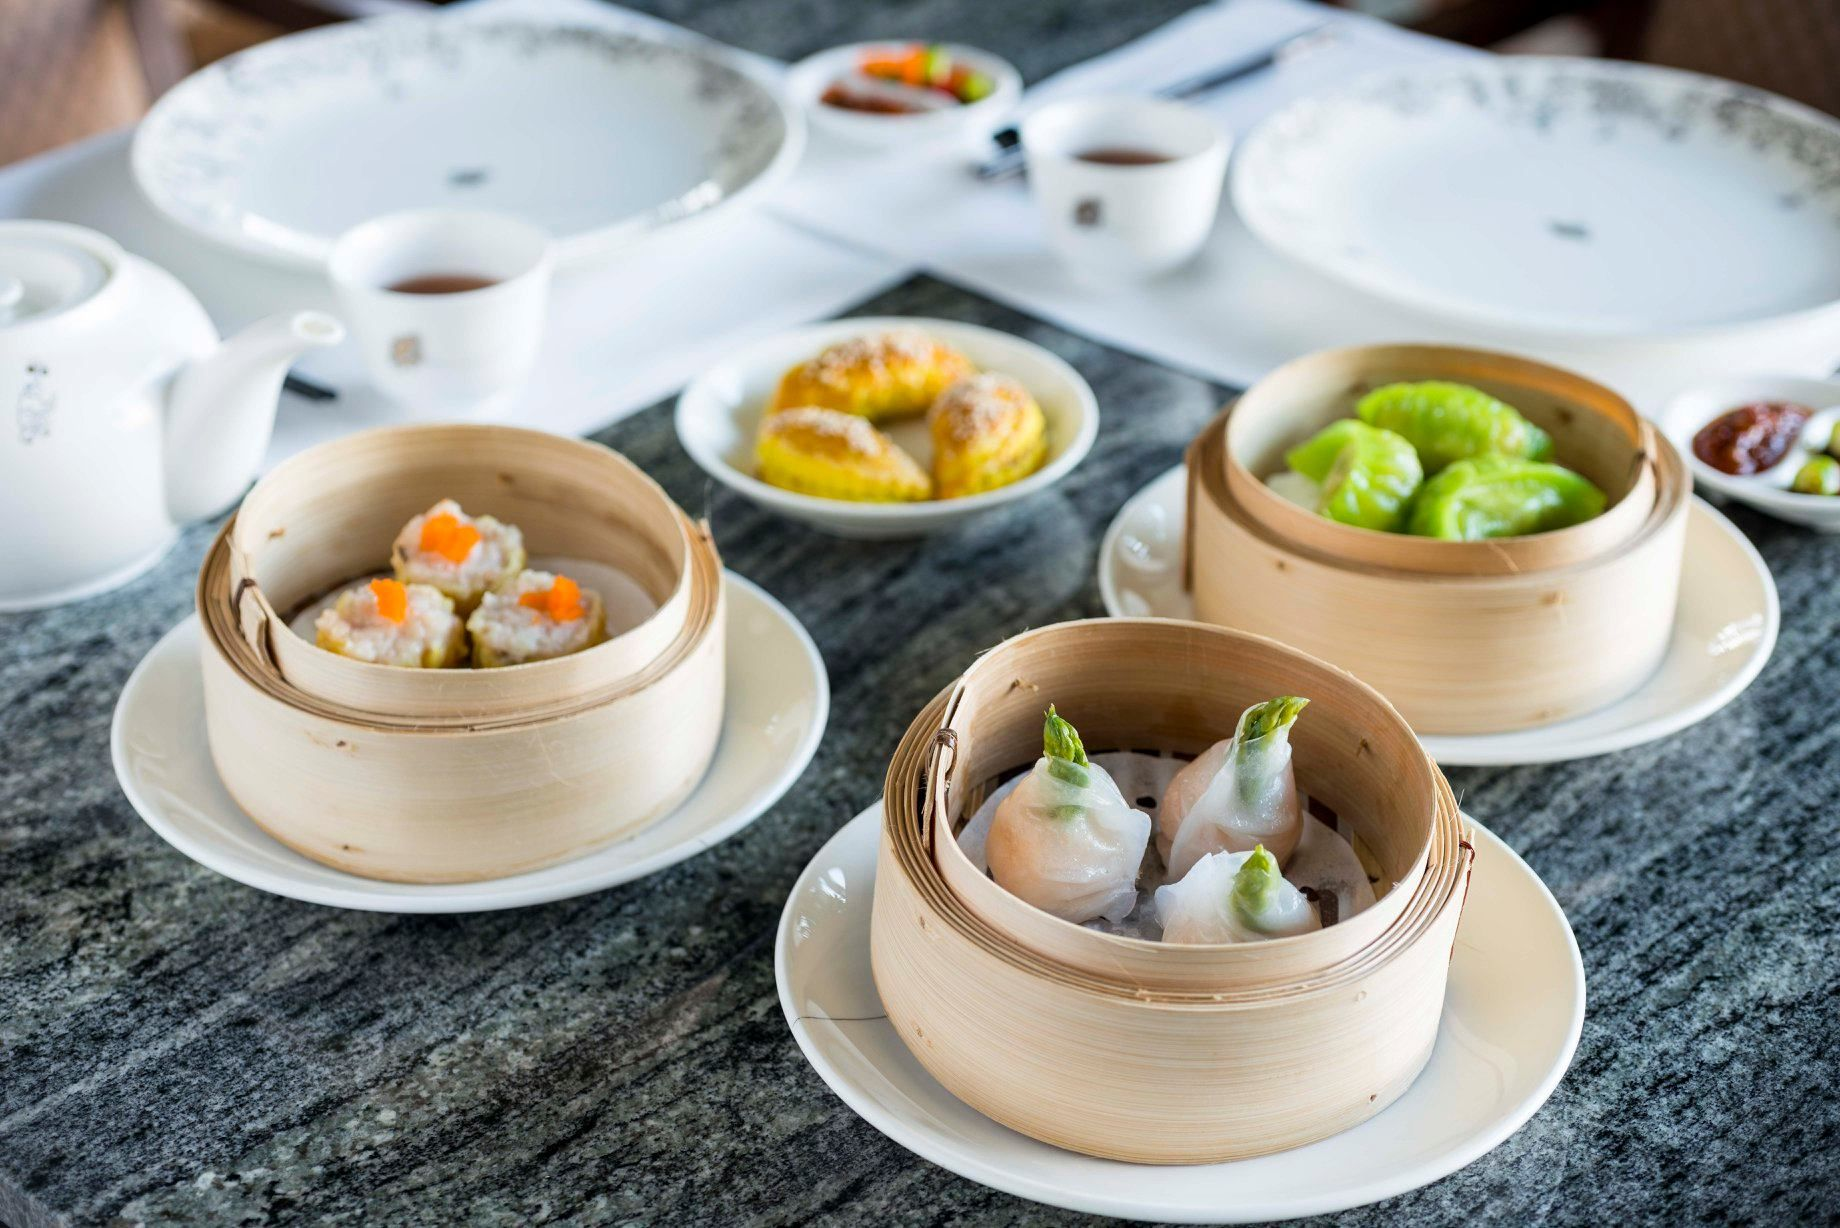 Thailand Tatler's Top Chinese Restaurants Of 2019